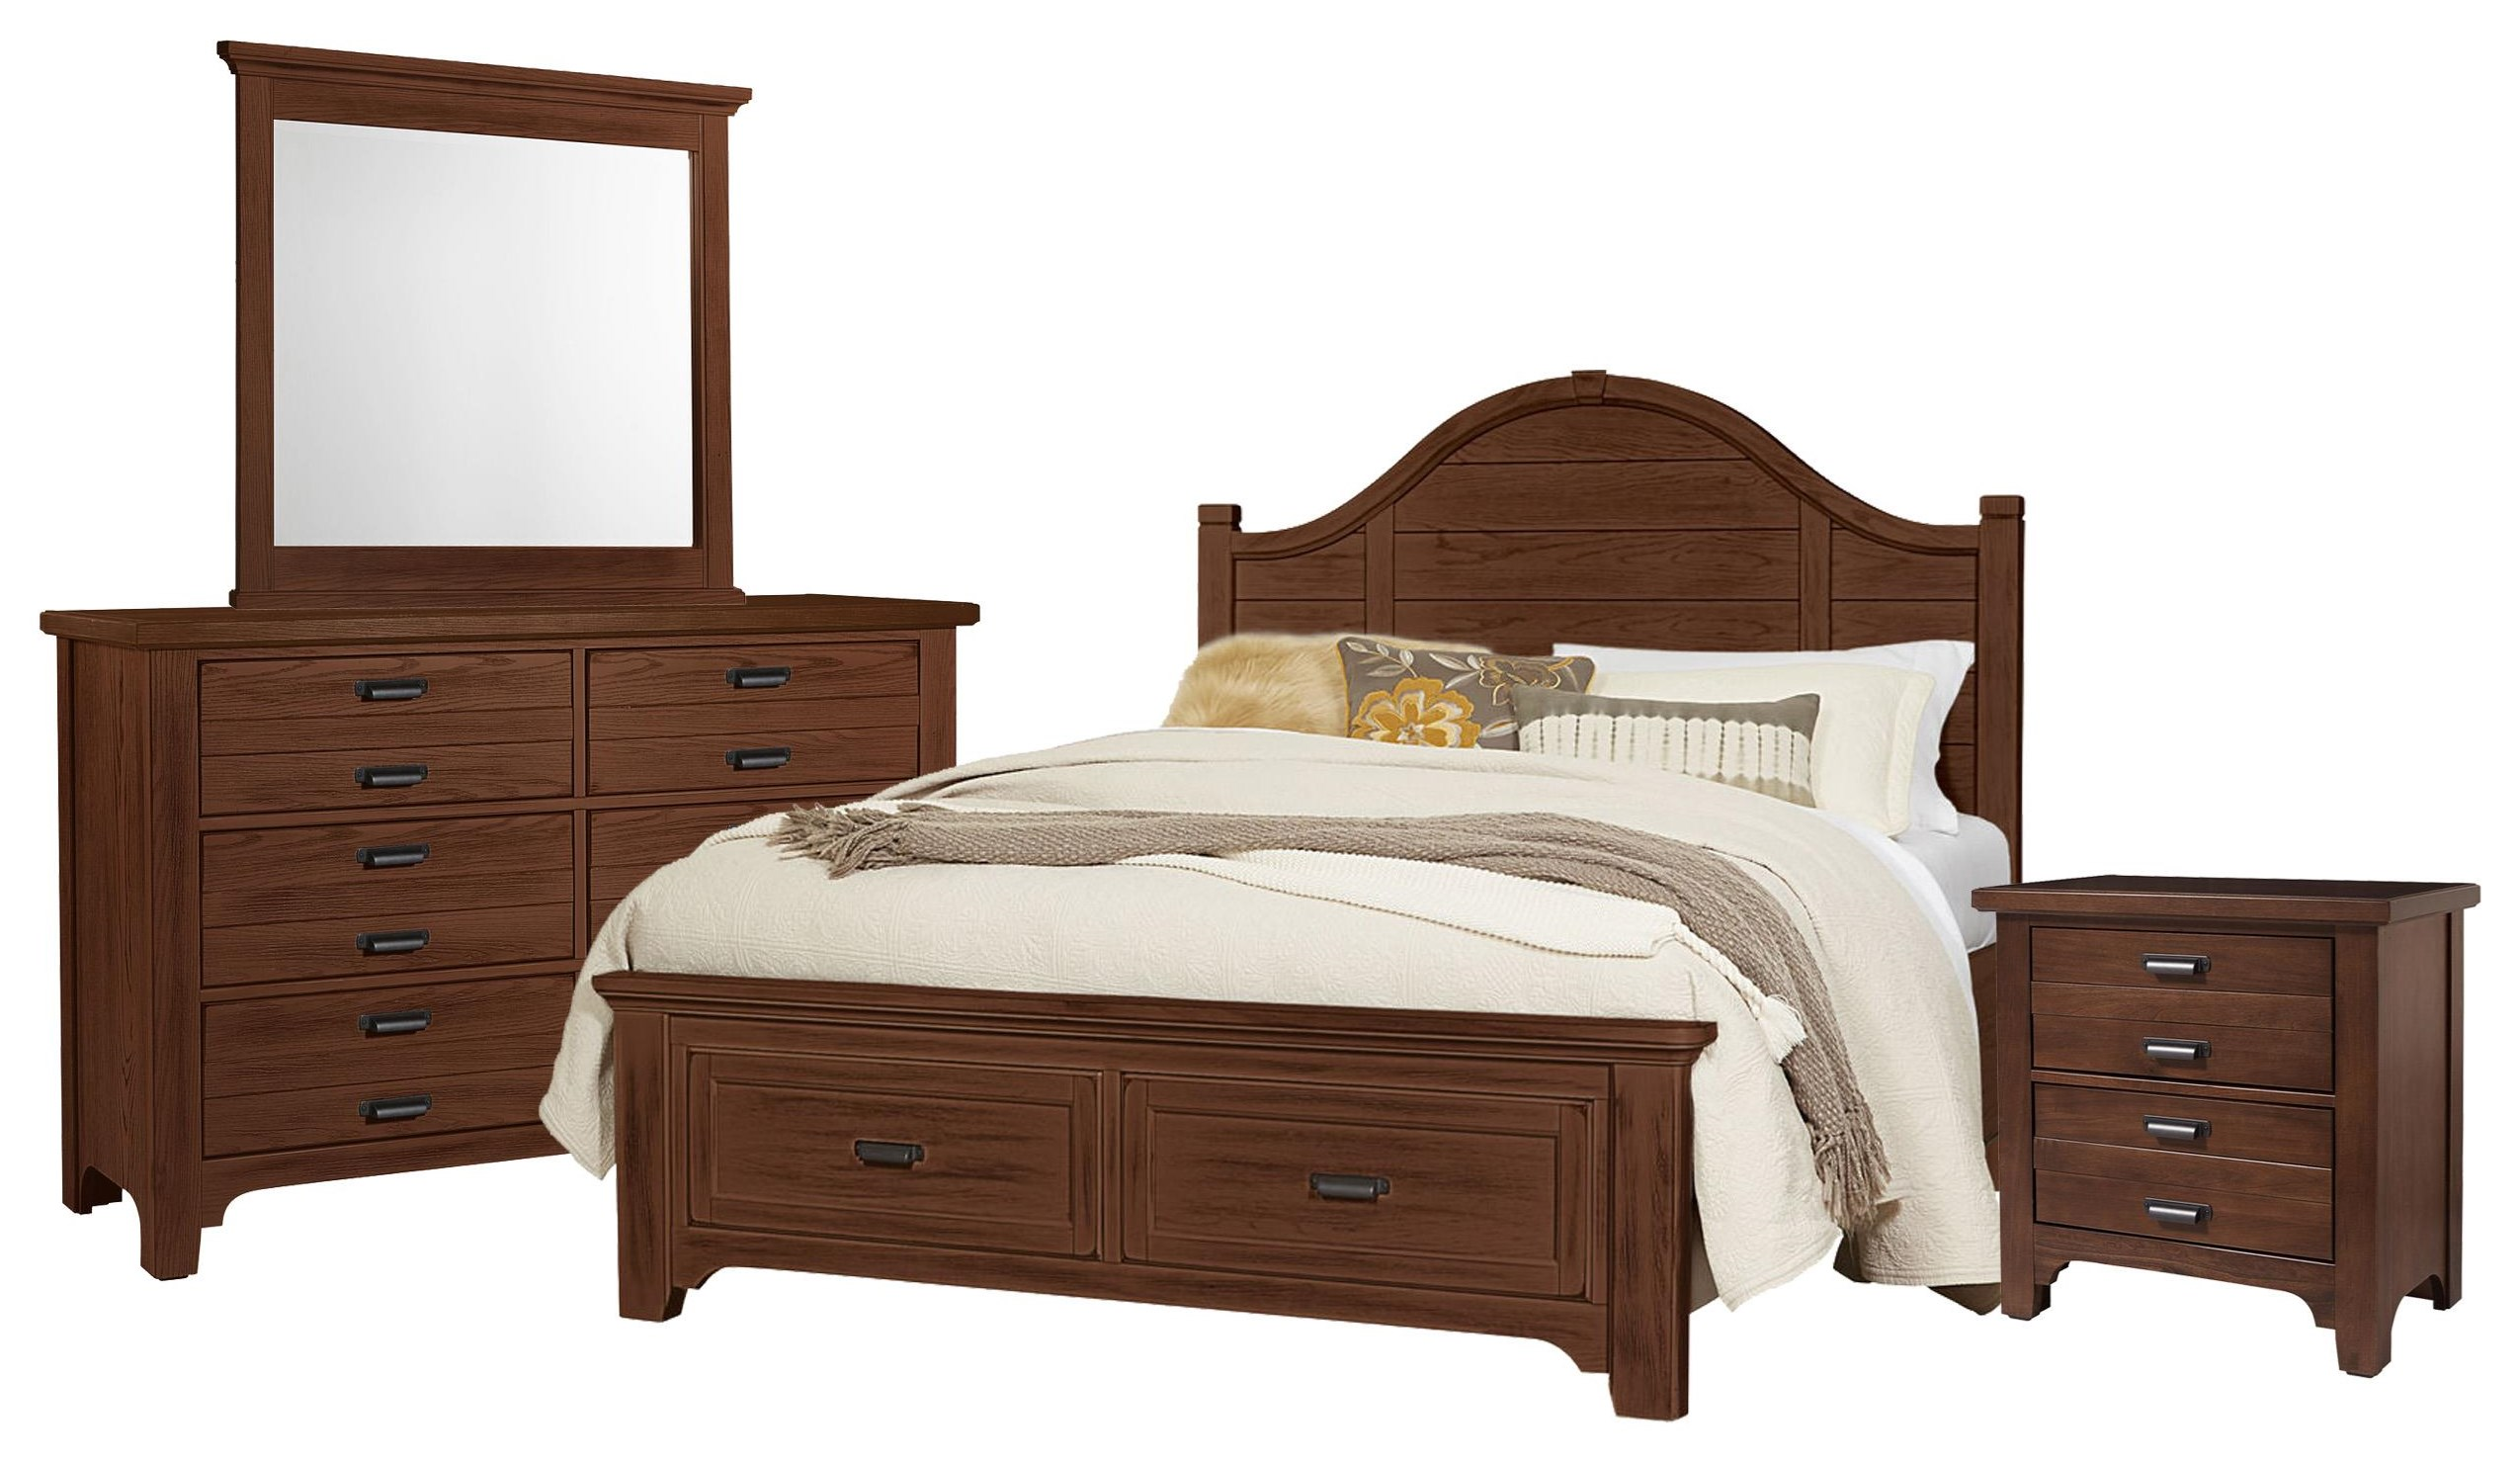 Bungalo Home Queen Arch, Dresser, Mirror, Nightstand by Vaughan Bassett at Johnny Janosik